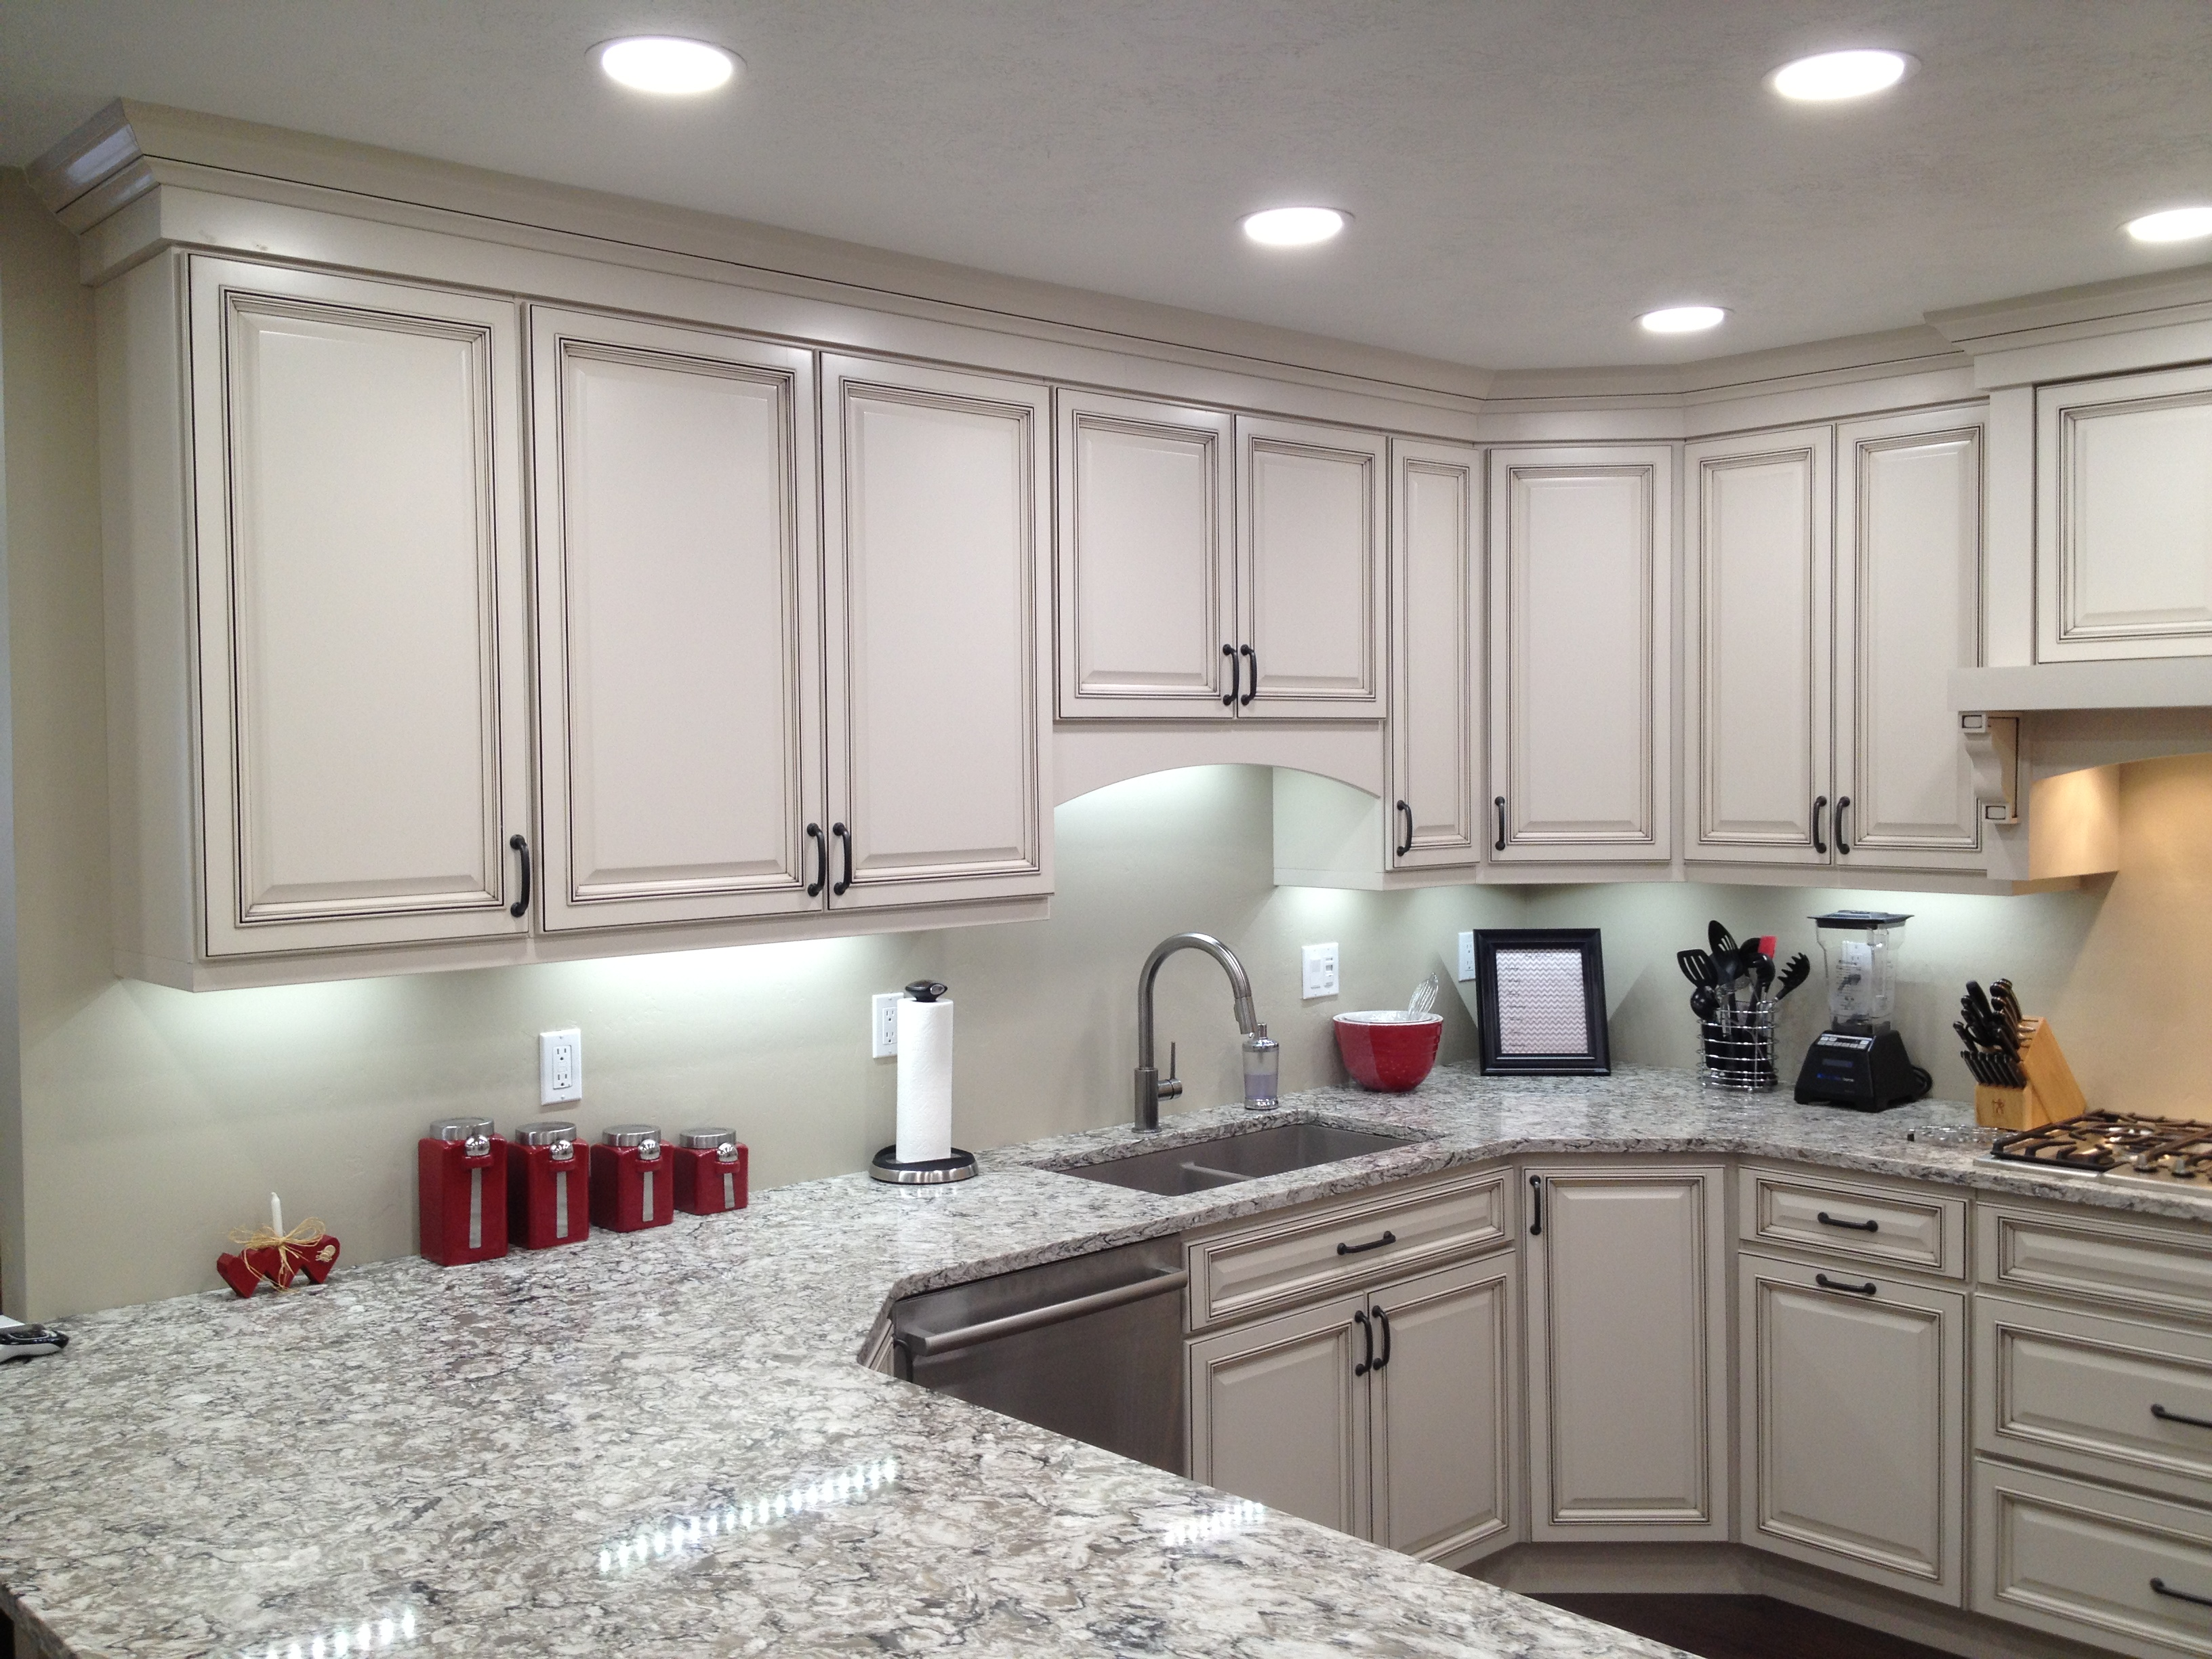 cabinet under led the lighting wire kitchen cabinets